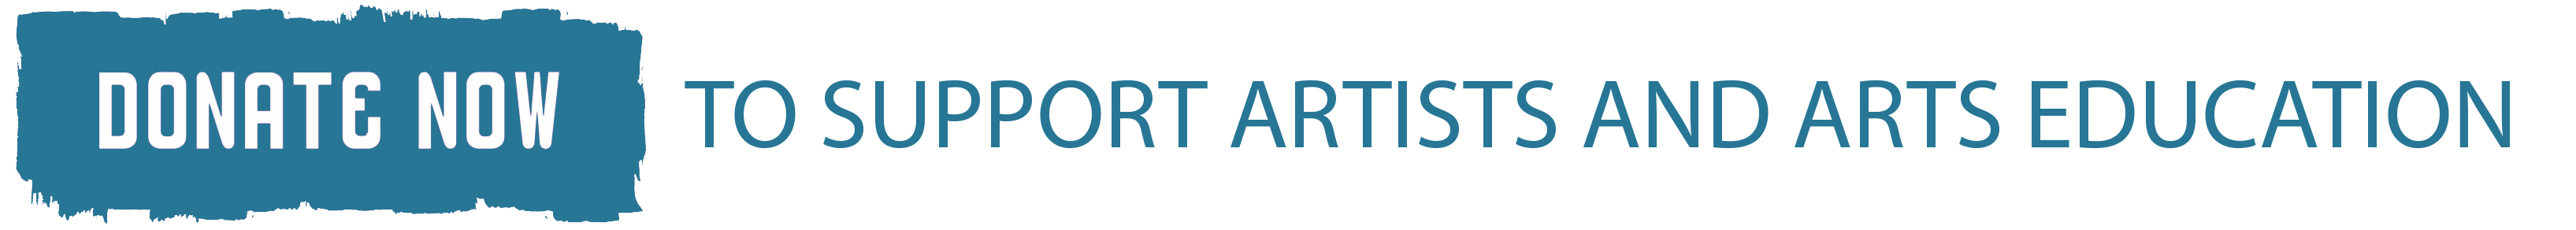 Donate Now to supports artists and arts education